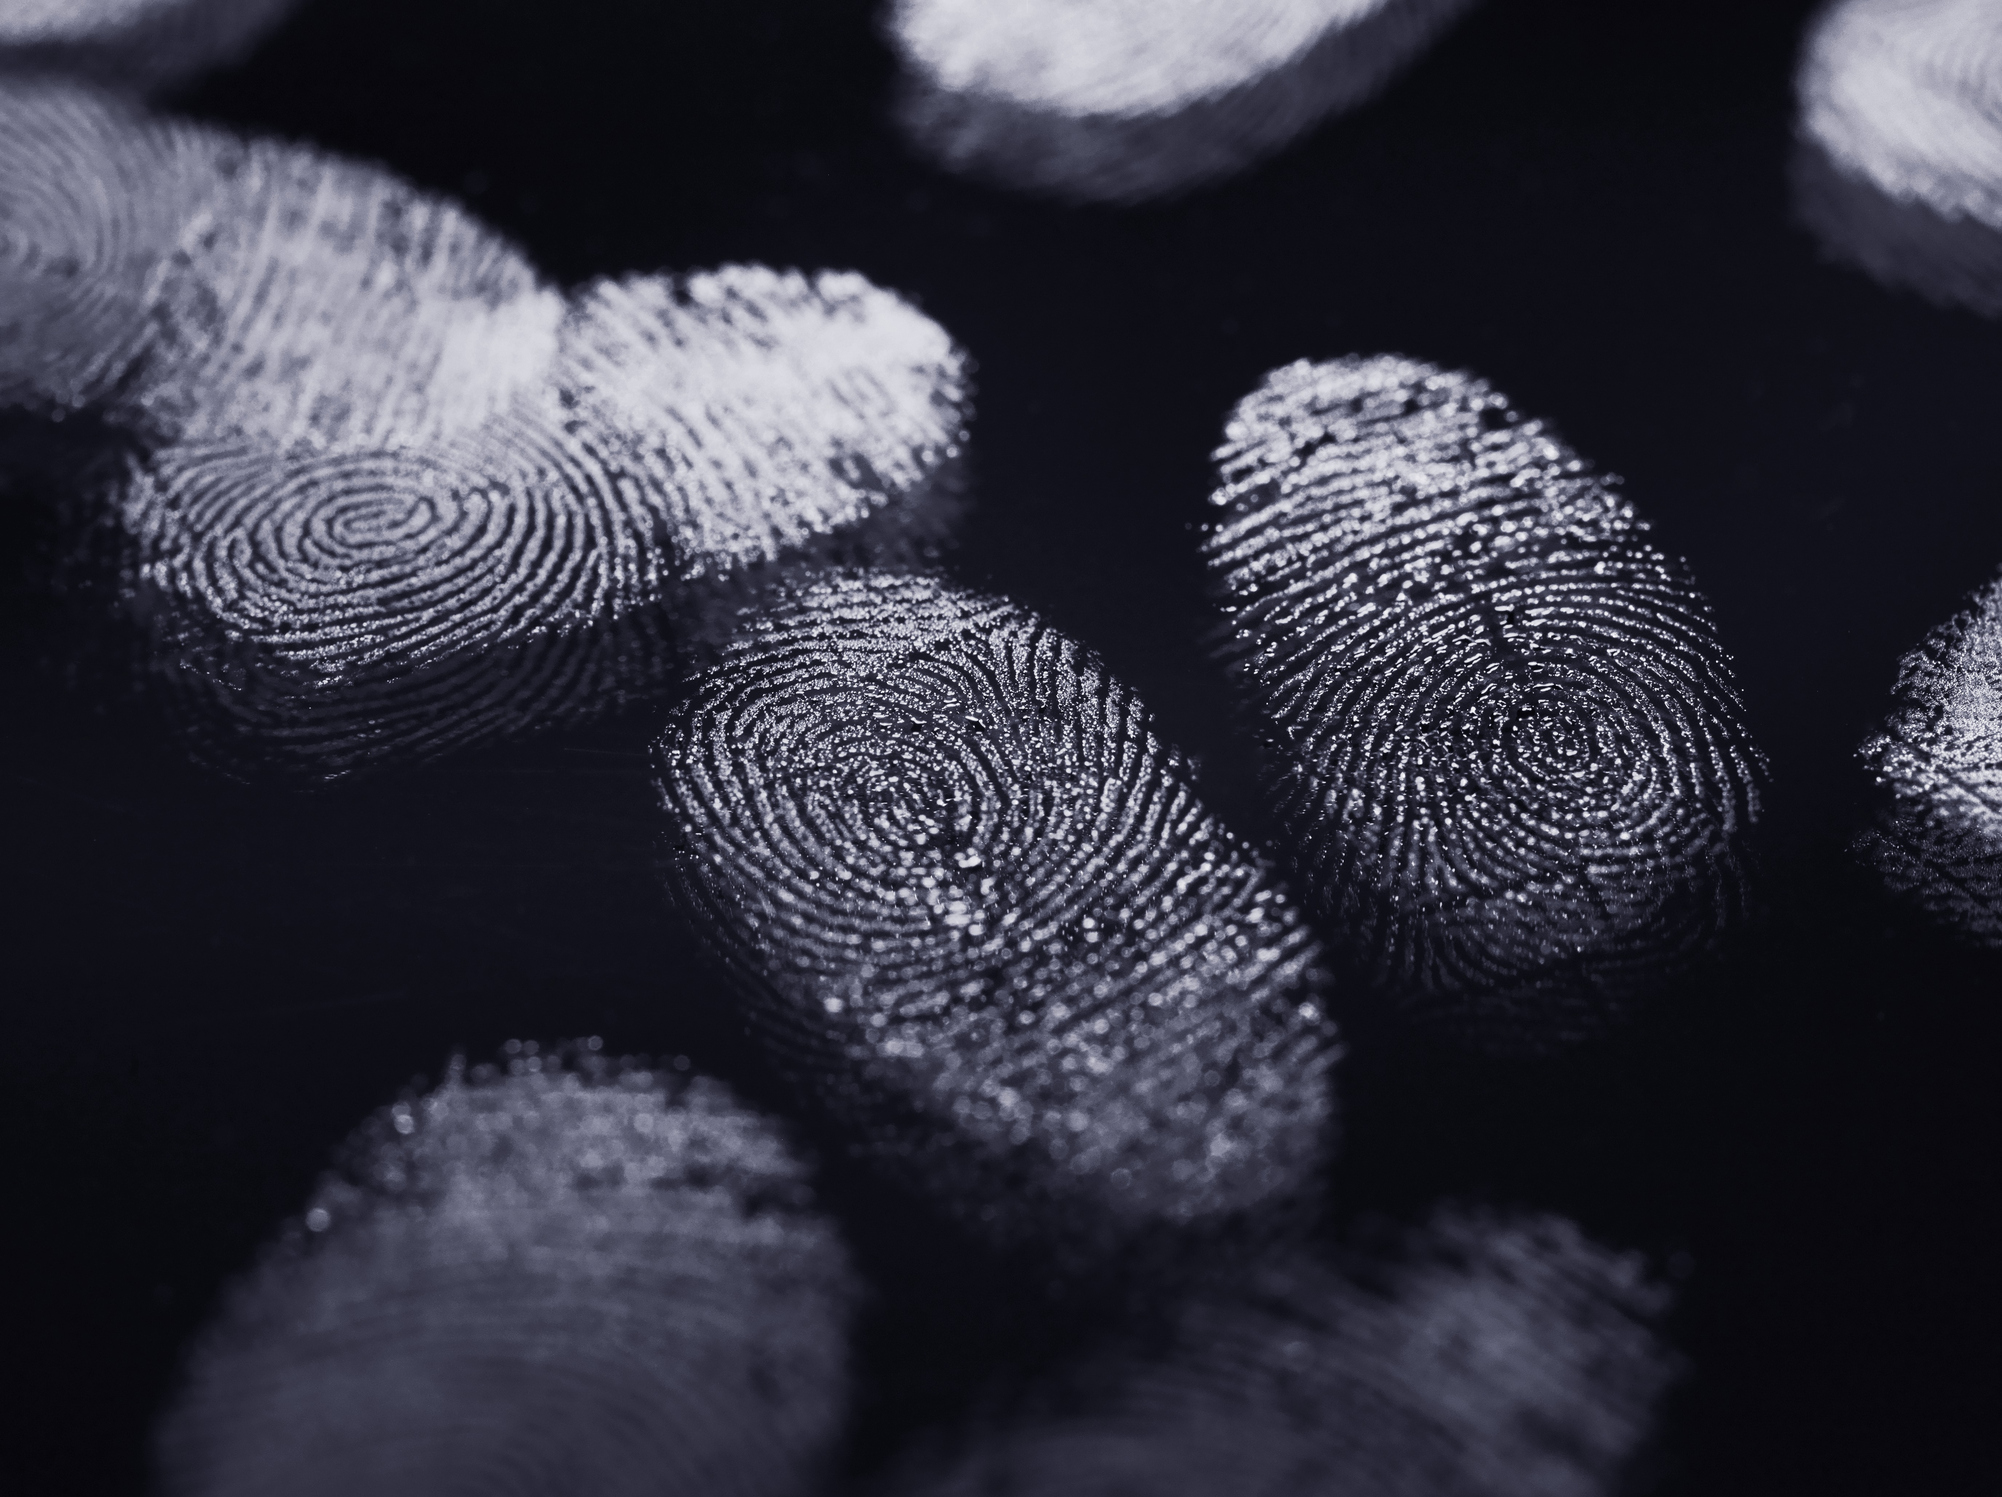 Did You Know Your Fingerprints Can Show If You've Done Drugs?